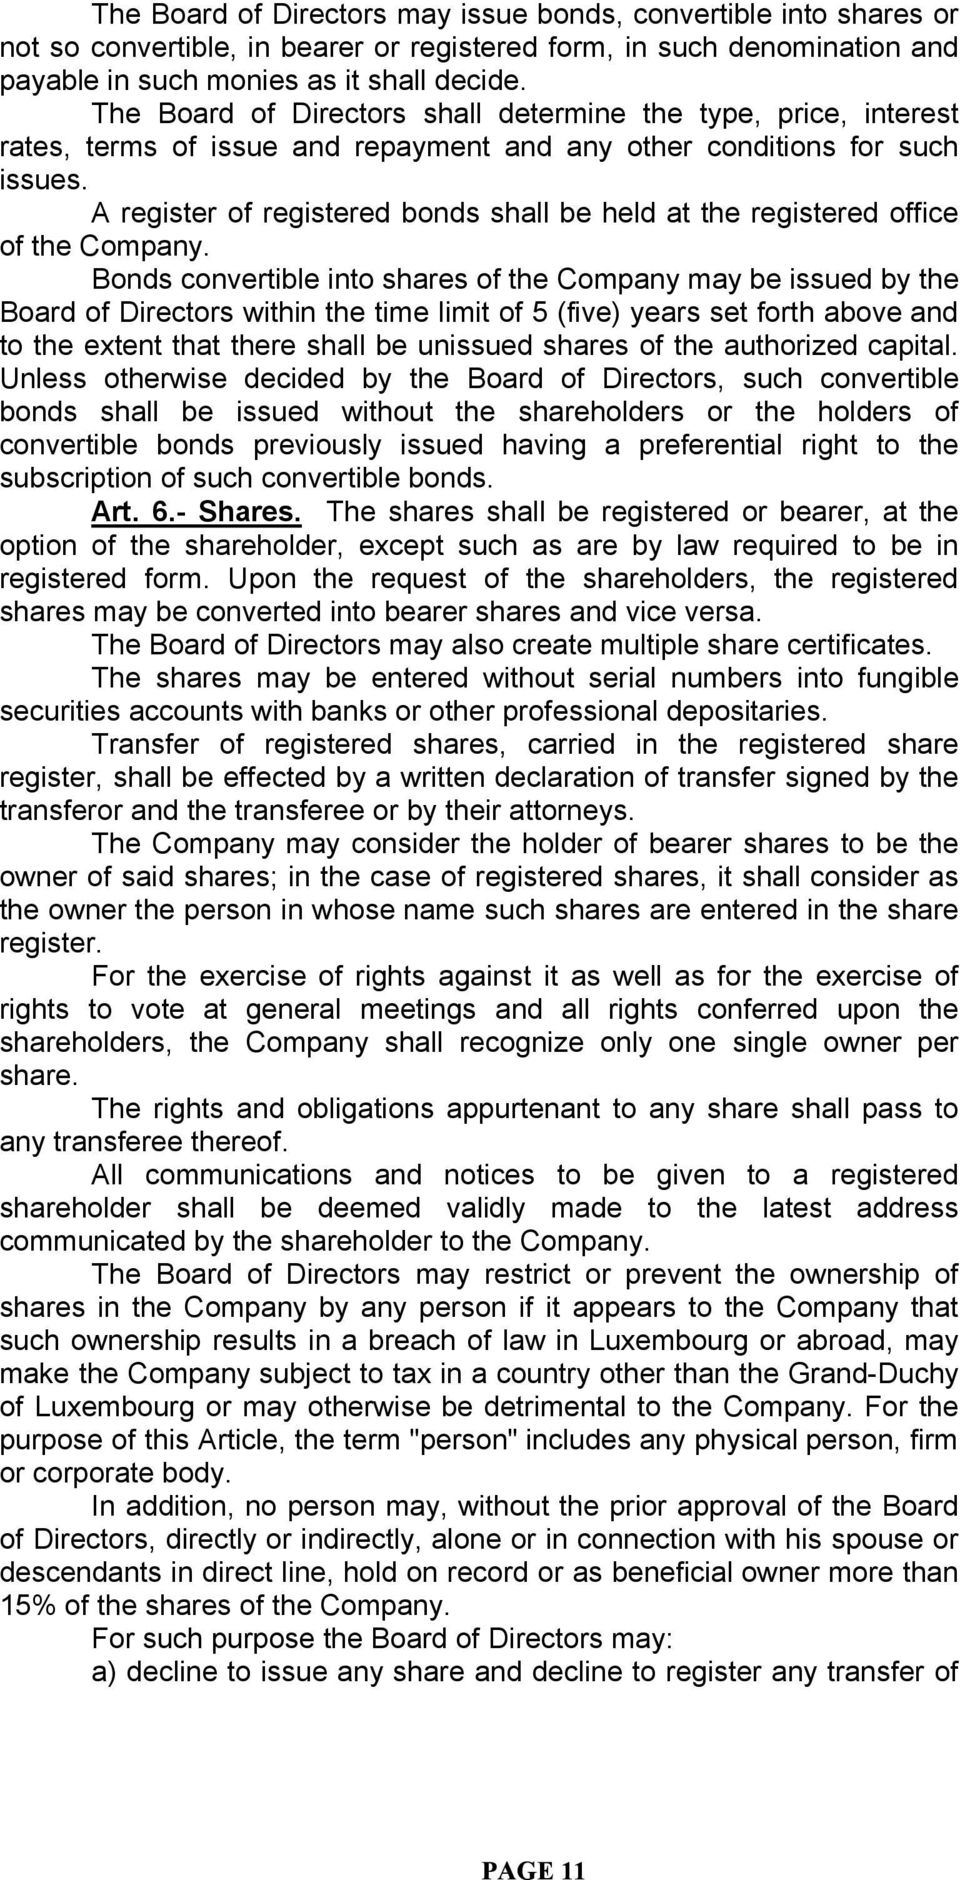 A register of registered bonds shall be held at the registered office of the Company.